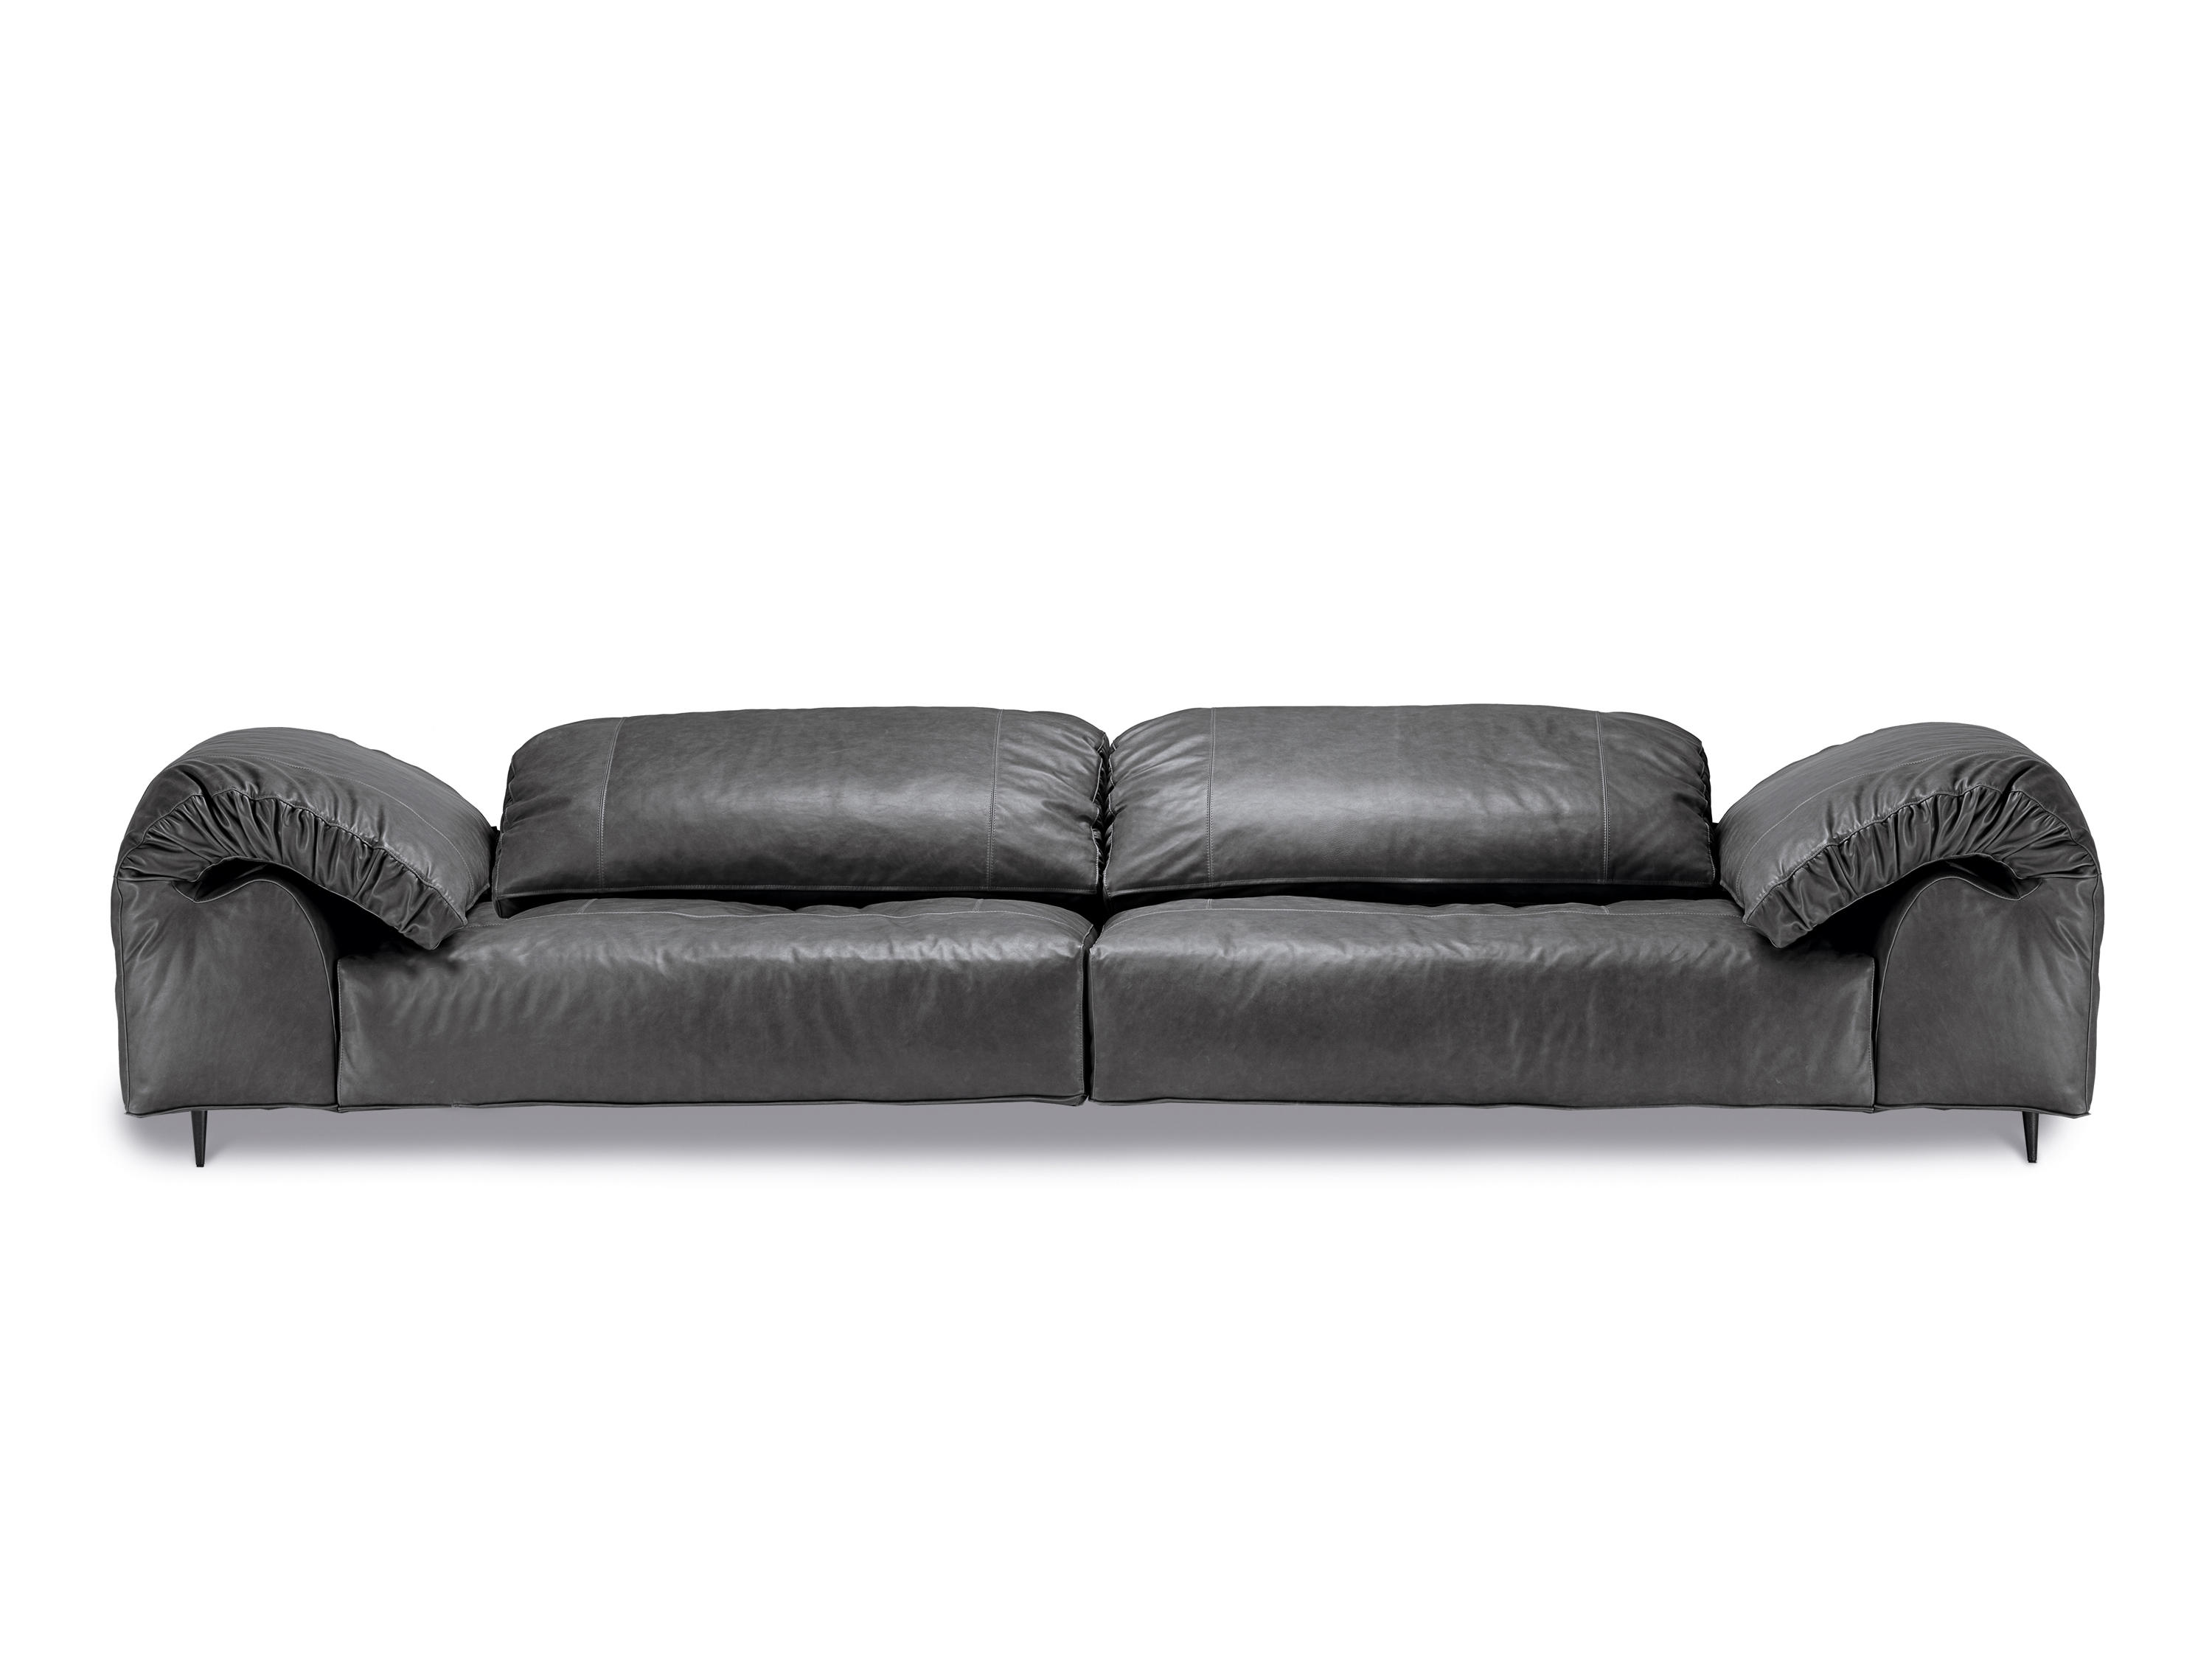 button century luxury design tuft to pertaining sofa with diamond mid